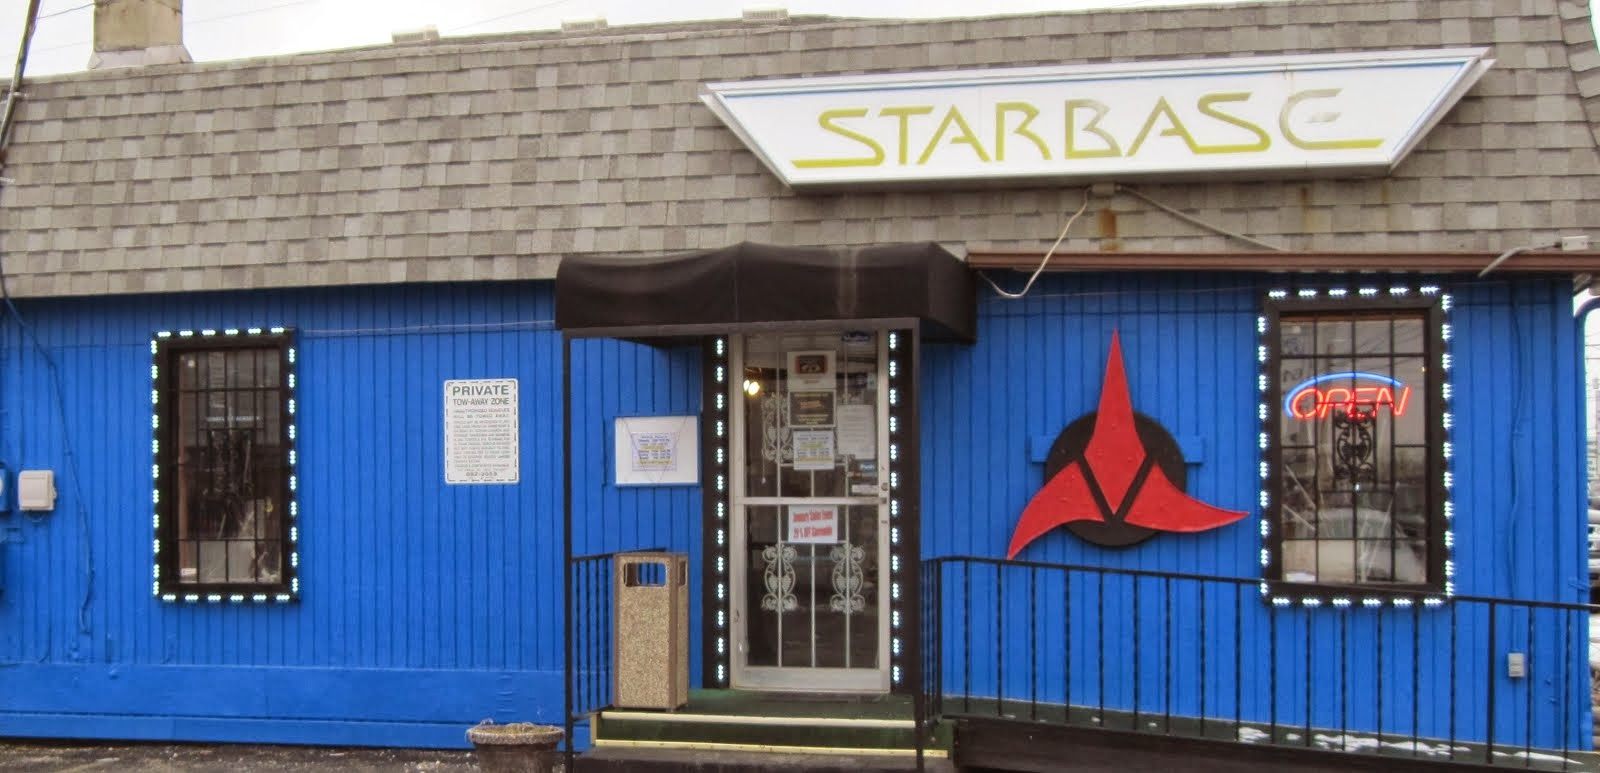 Star Base Columbus<br>Your #1 Weekend Destination!